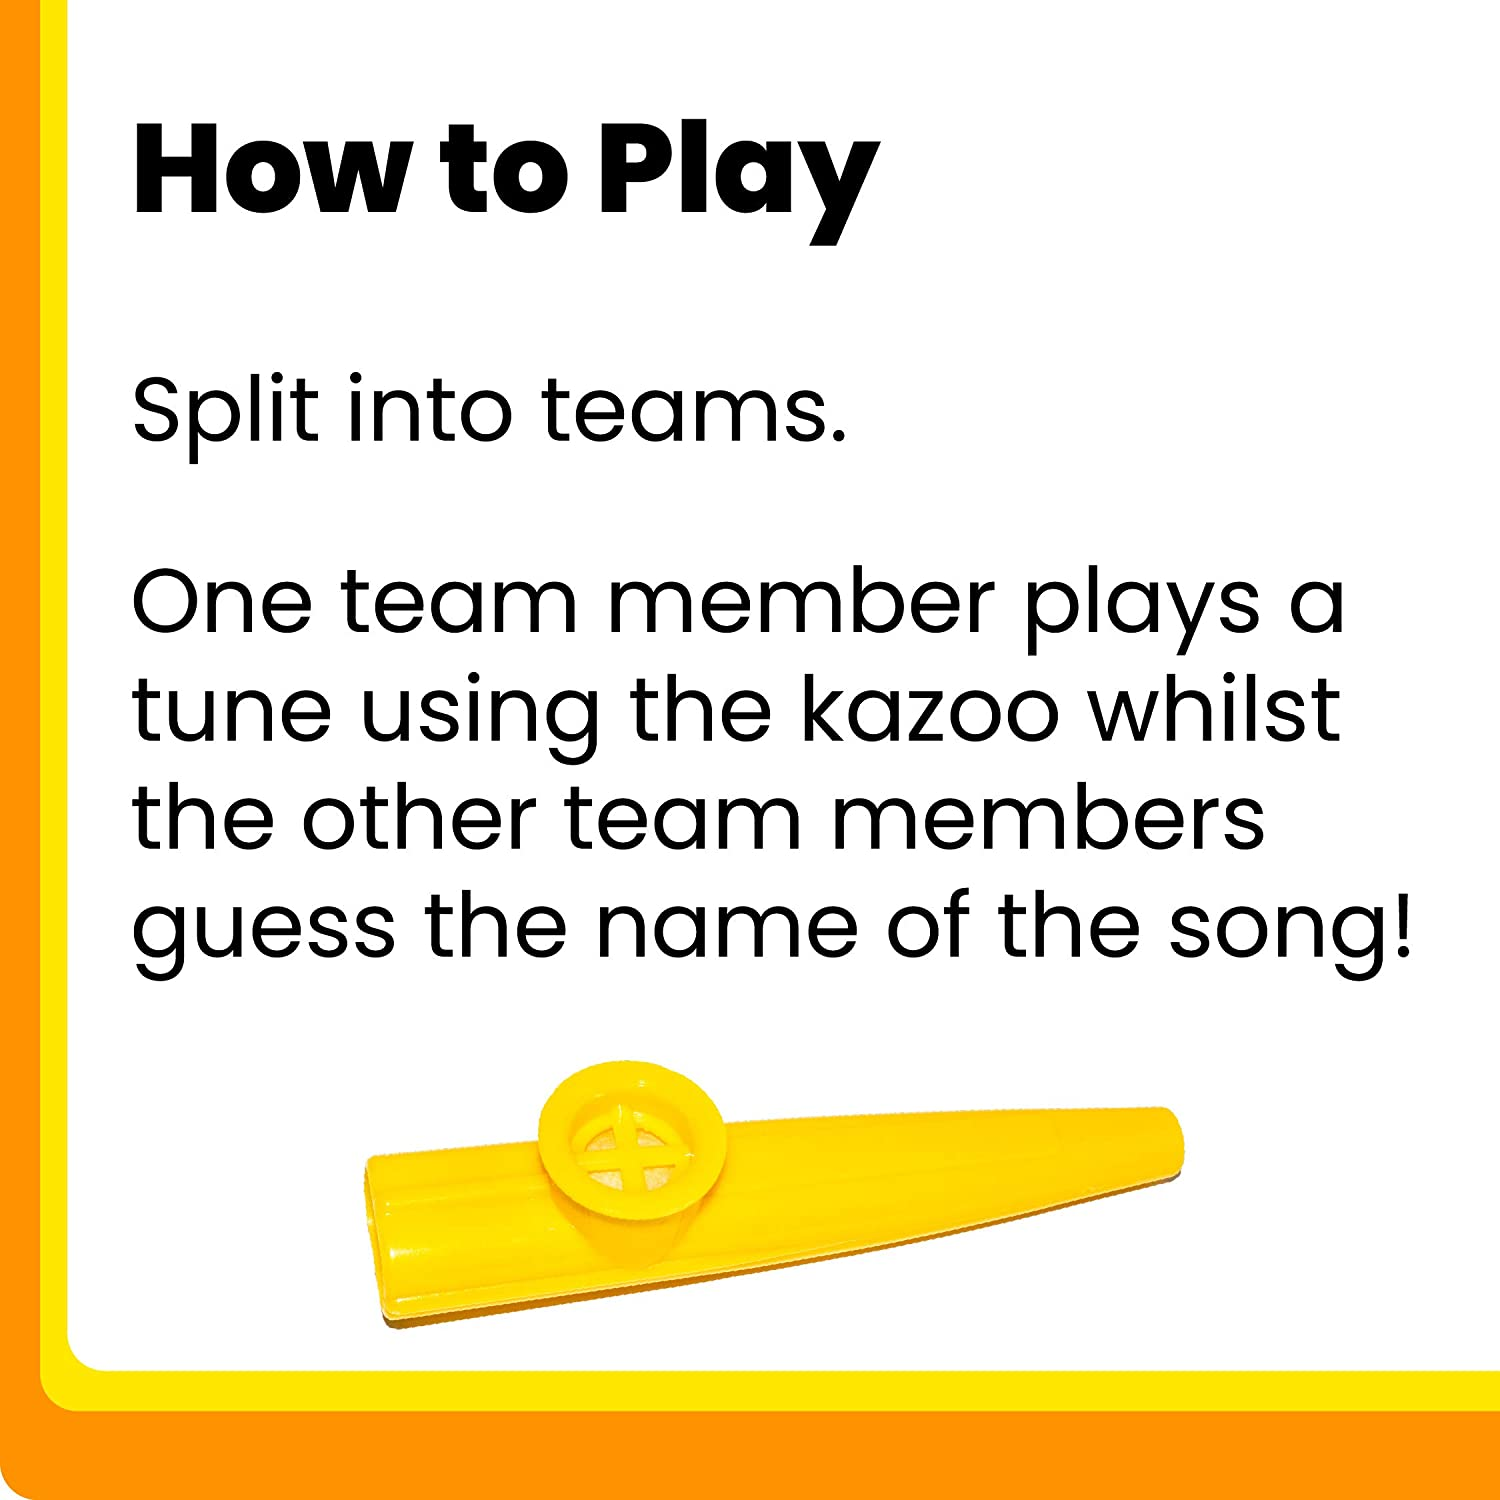 Music Trivia Game with Kazoos Paladone Play That Tune